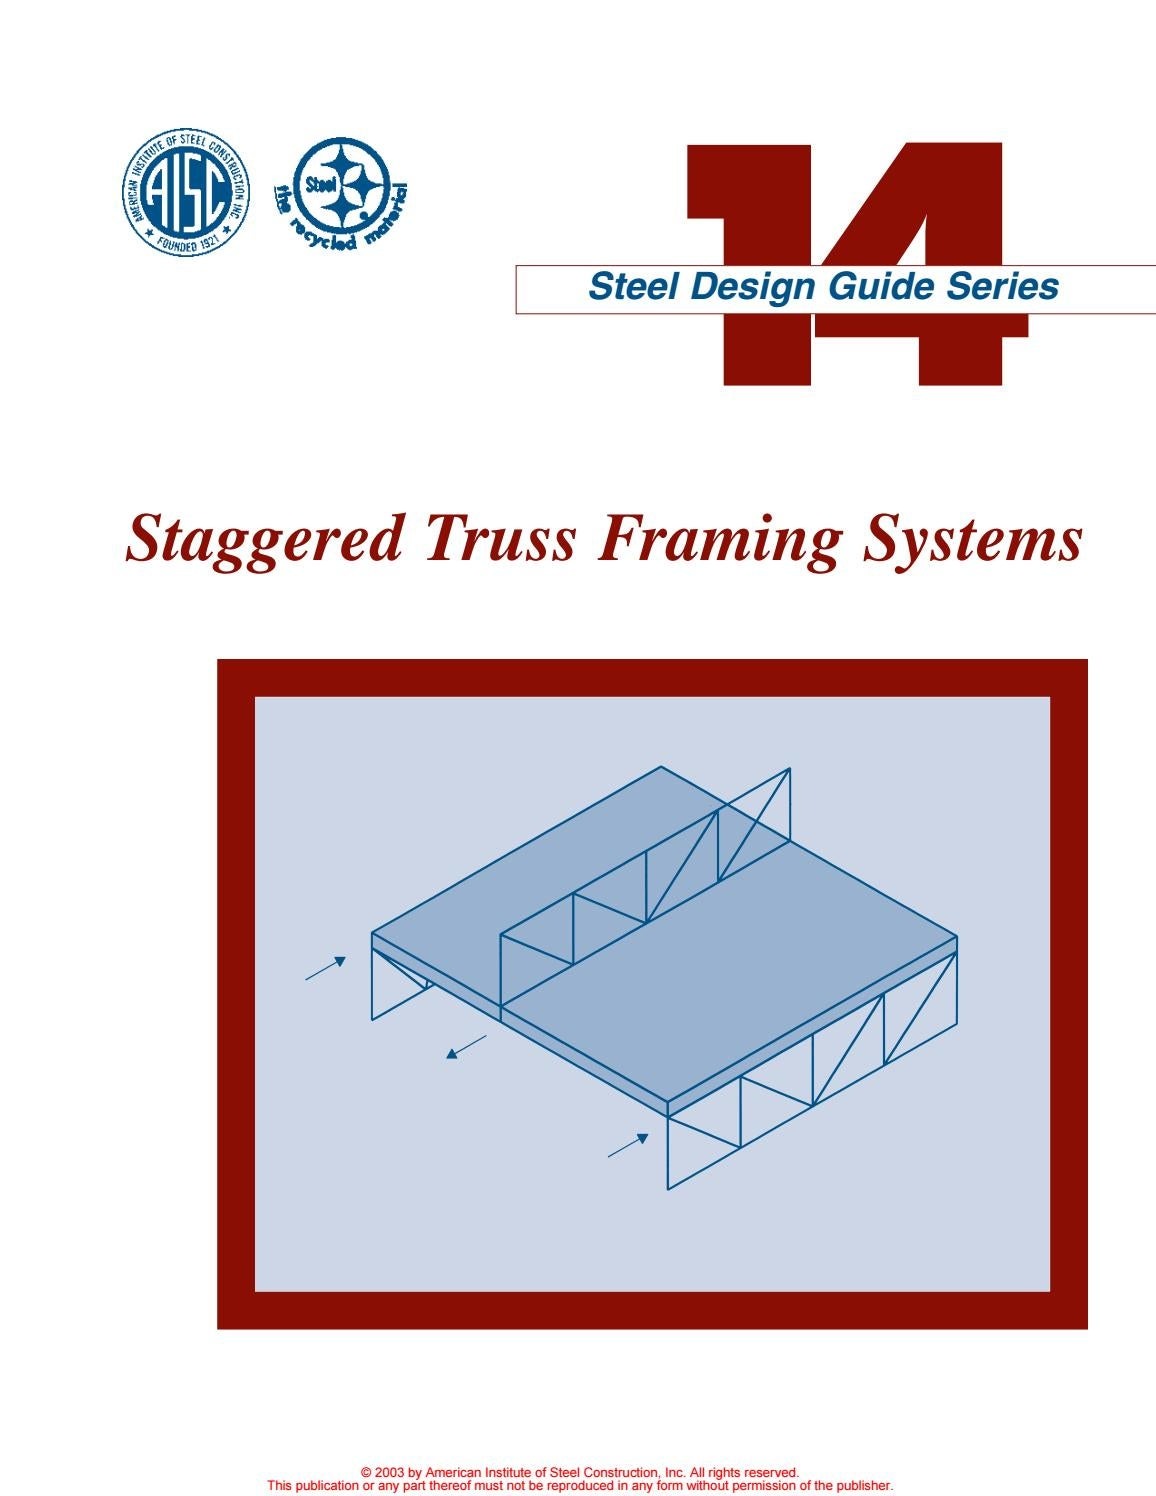 Aisc design guide 14 staggered truss framing systems by Pedro ...